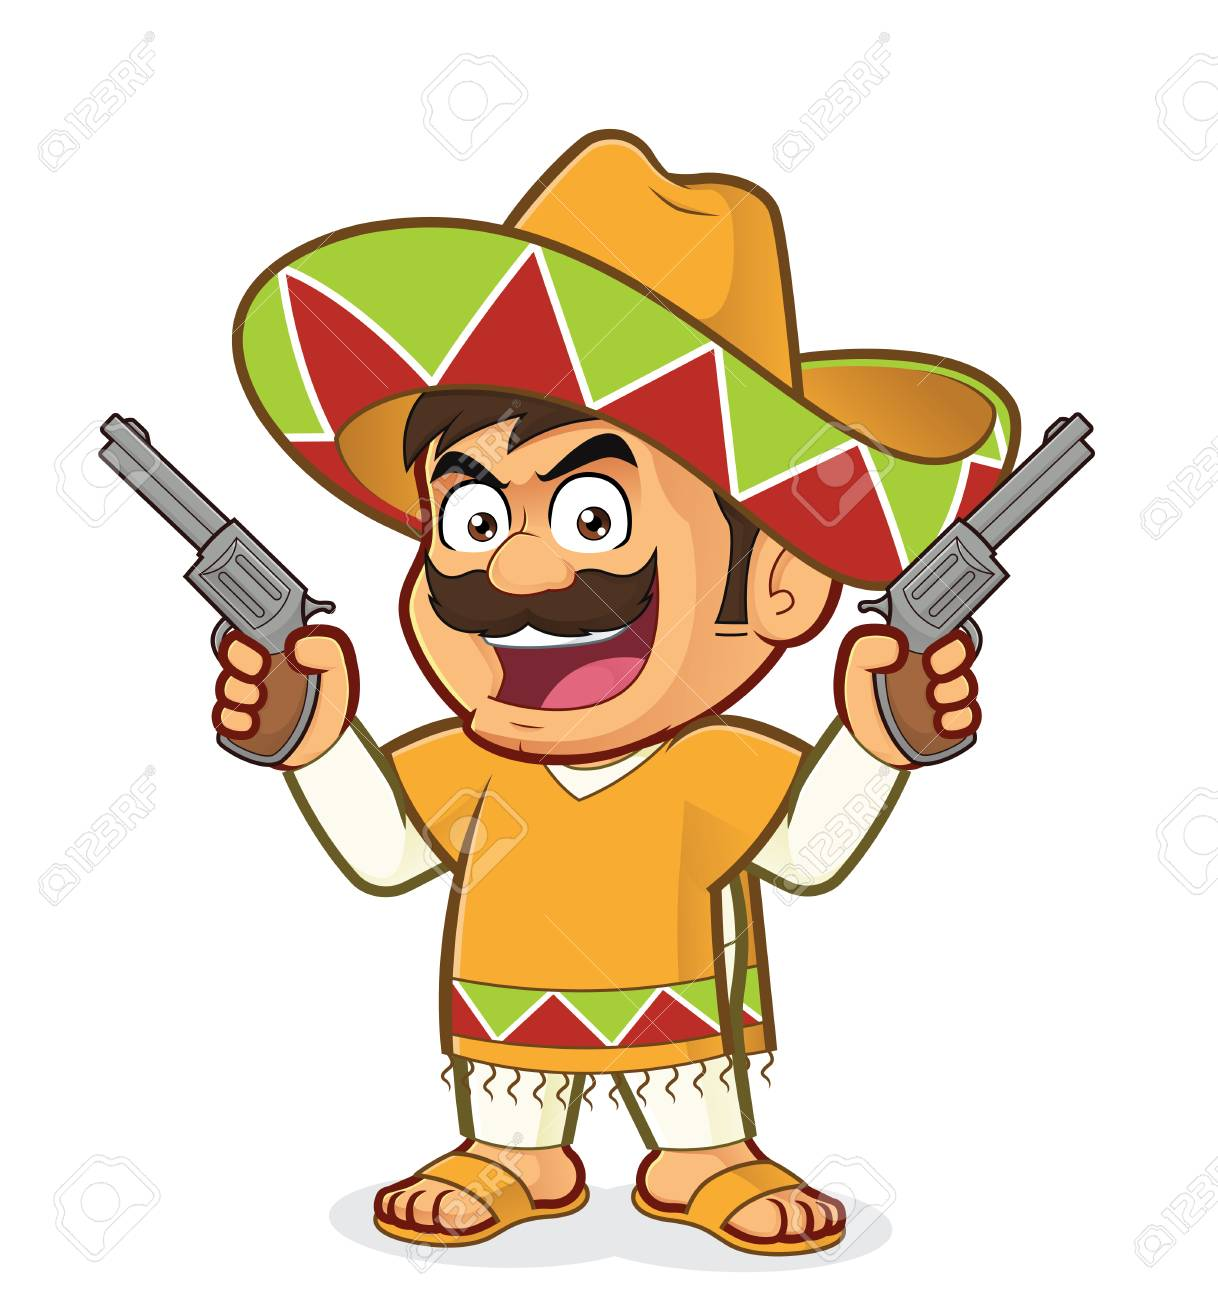 Mexican man holding two guns.